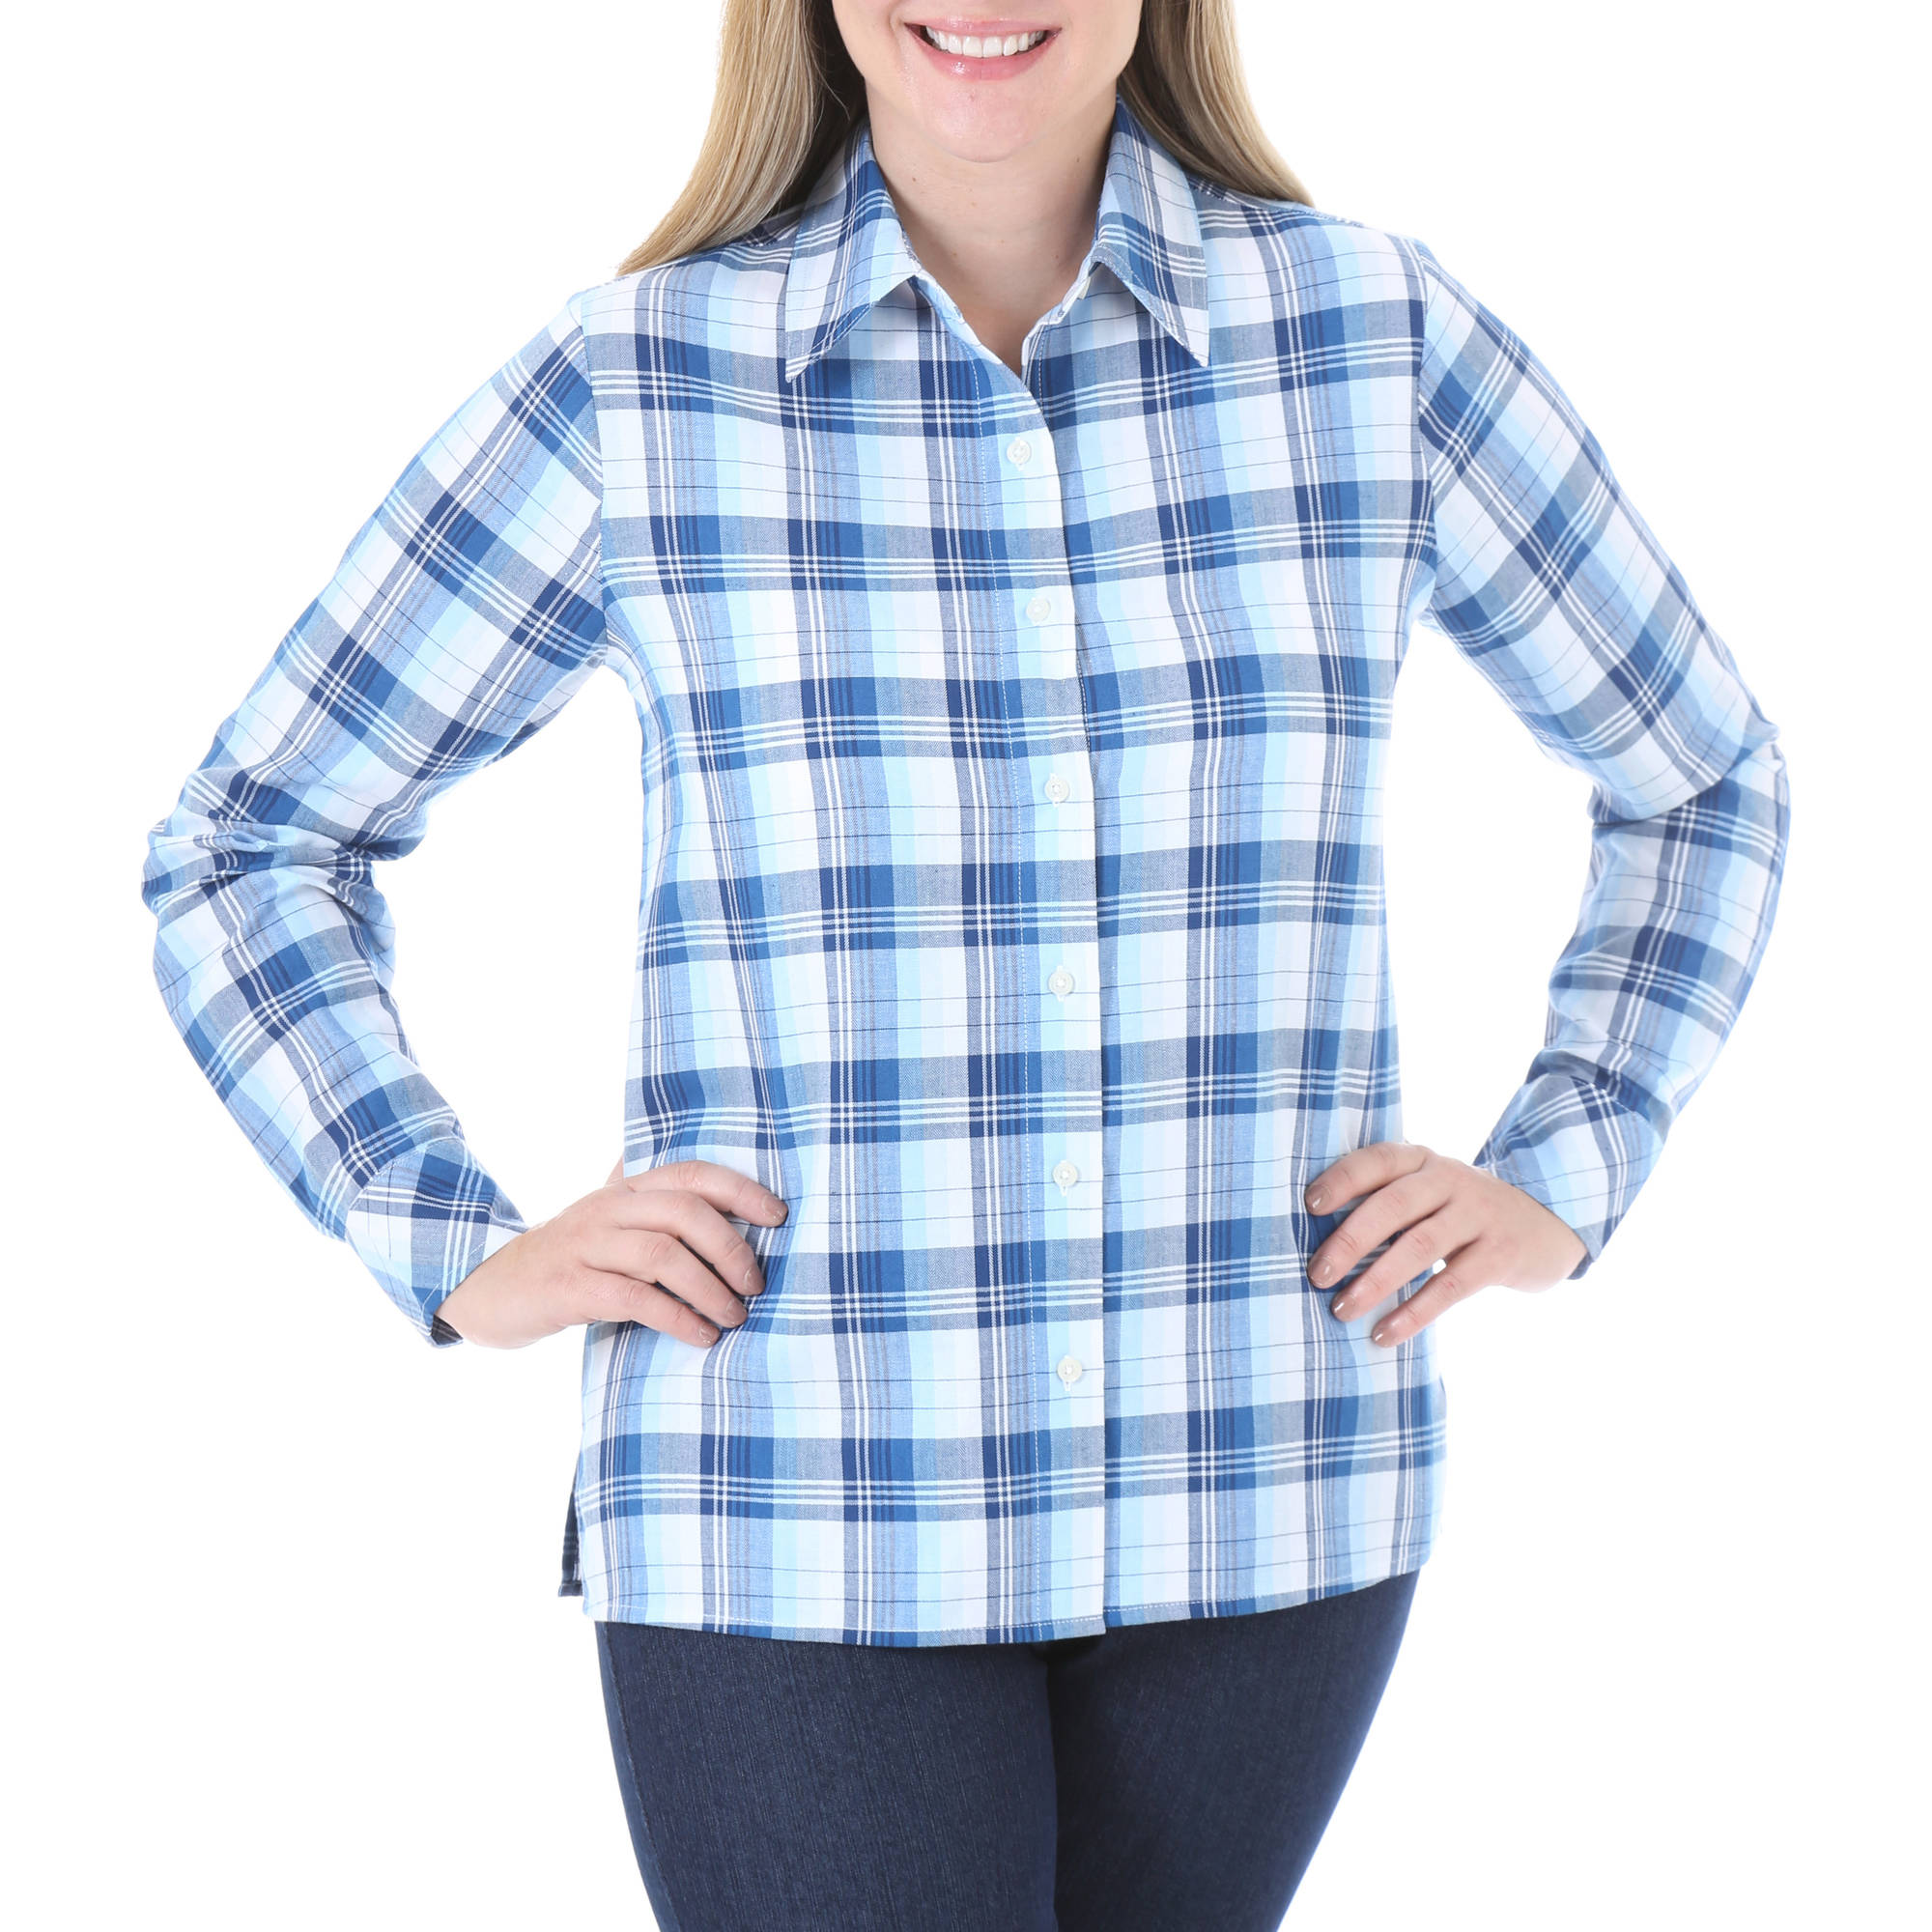 Chic Womens Comfort Collection Classic Plaid Shirt